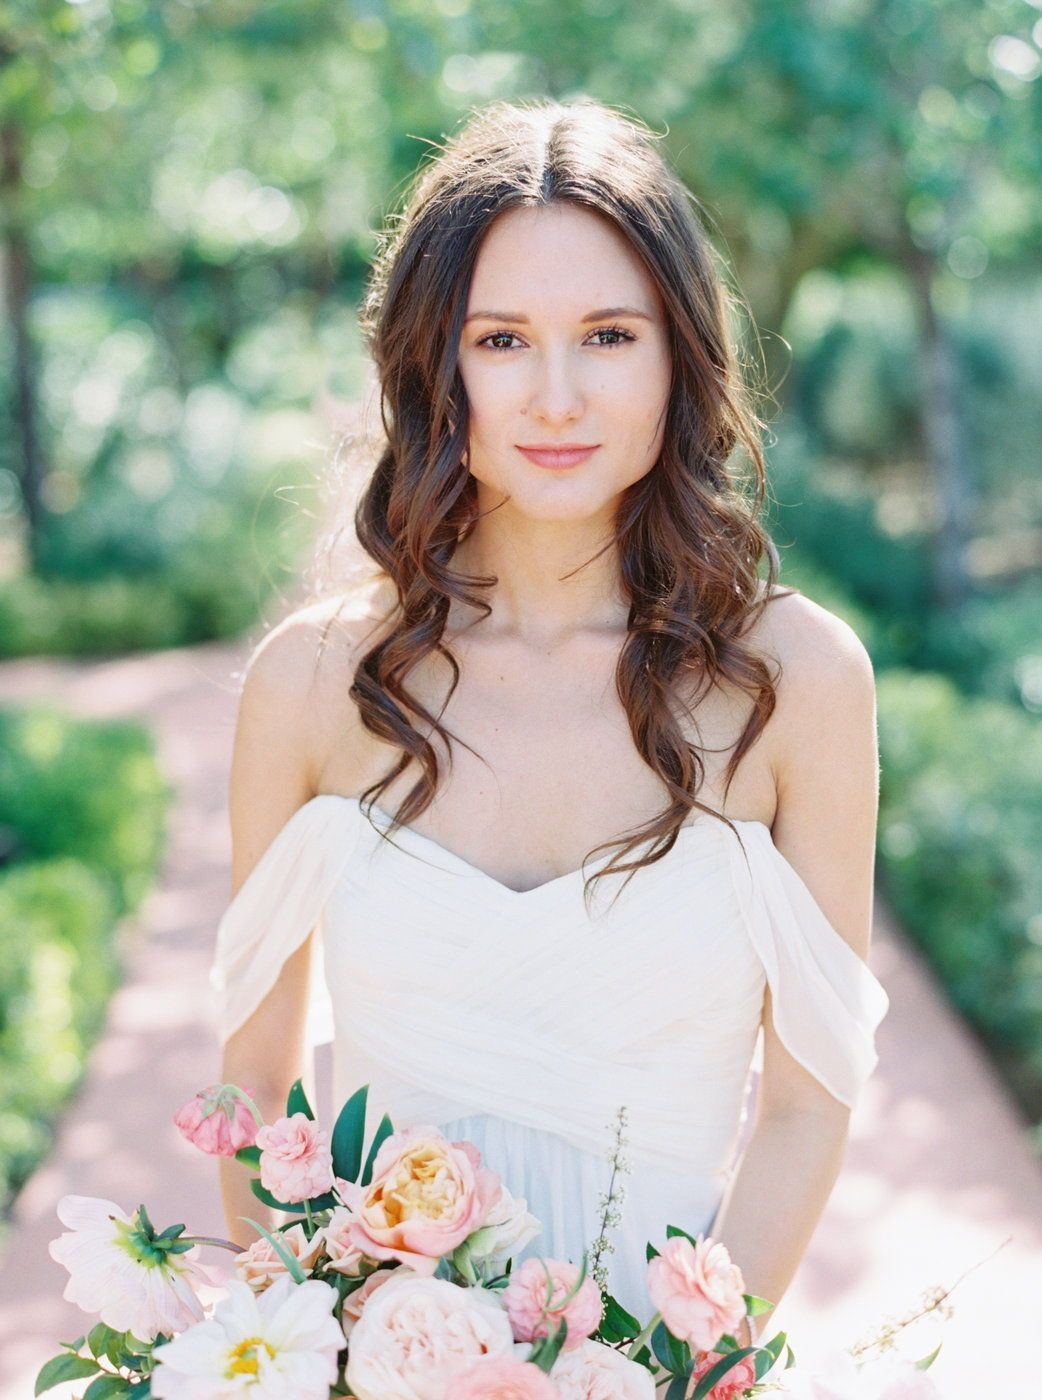 Spring Wedding style Hair down, free flowing romantic